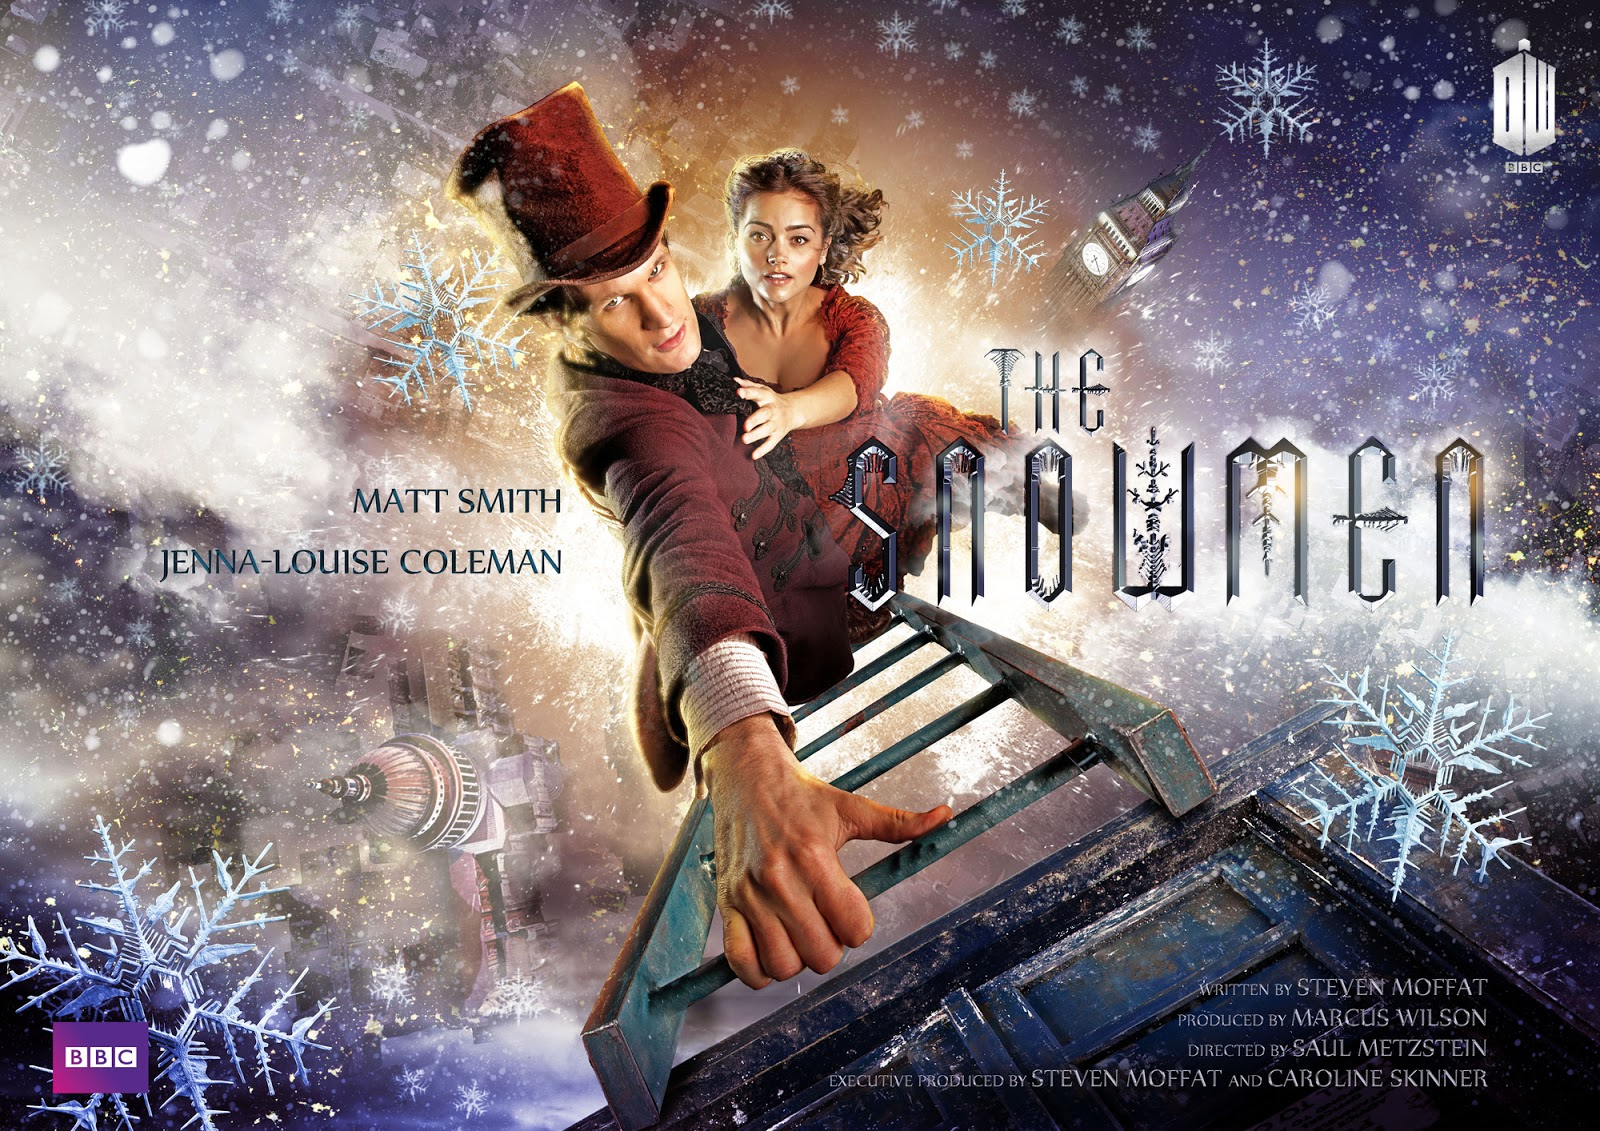 http://4.bp.blogspot.com/-gL8AvPwQdig/UMUcVqb4ZFI/AAAAAAAAB20/ck1E508_AFo/s1600/3243574-low_res-doctor-who-christmas-special-2012.jpg